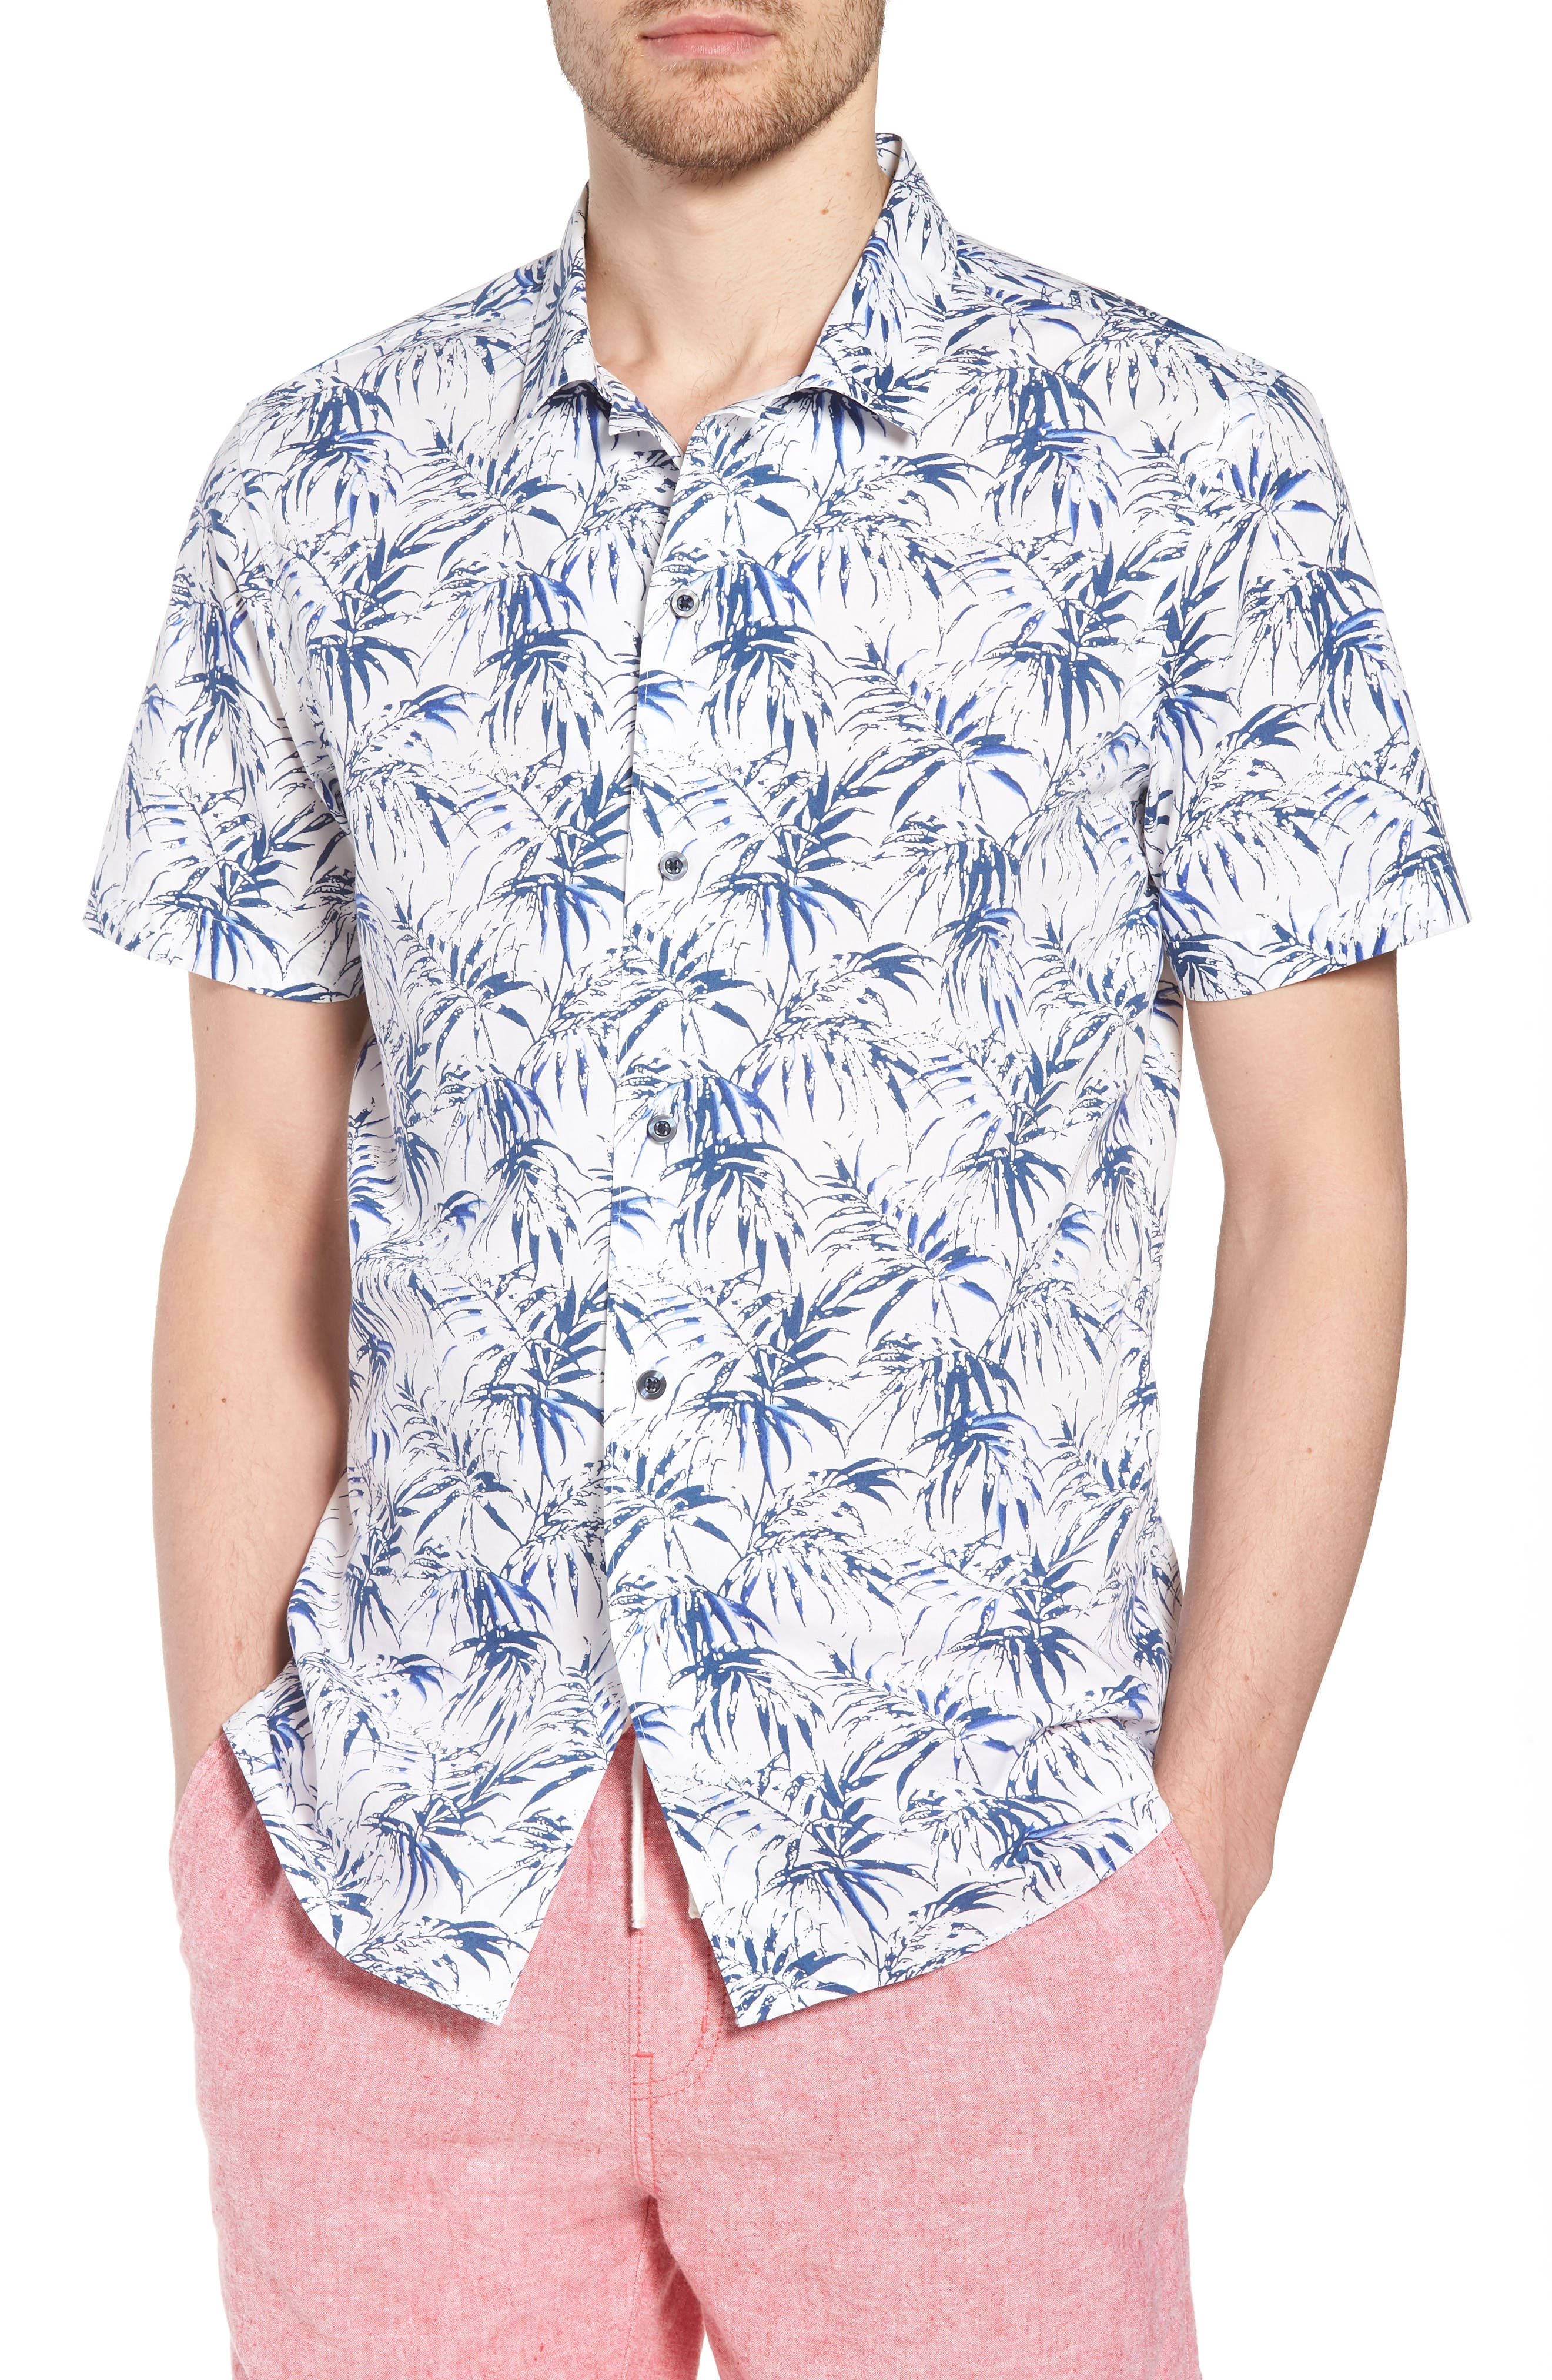 Trim Fit Palm Print Camp Shirt,                         Main,                         color, White Navy Stamped Palms